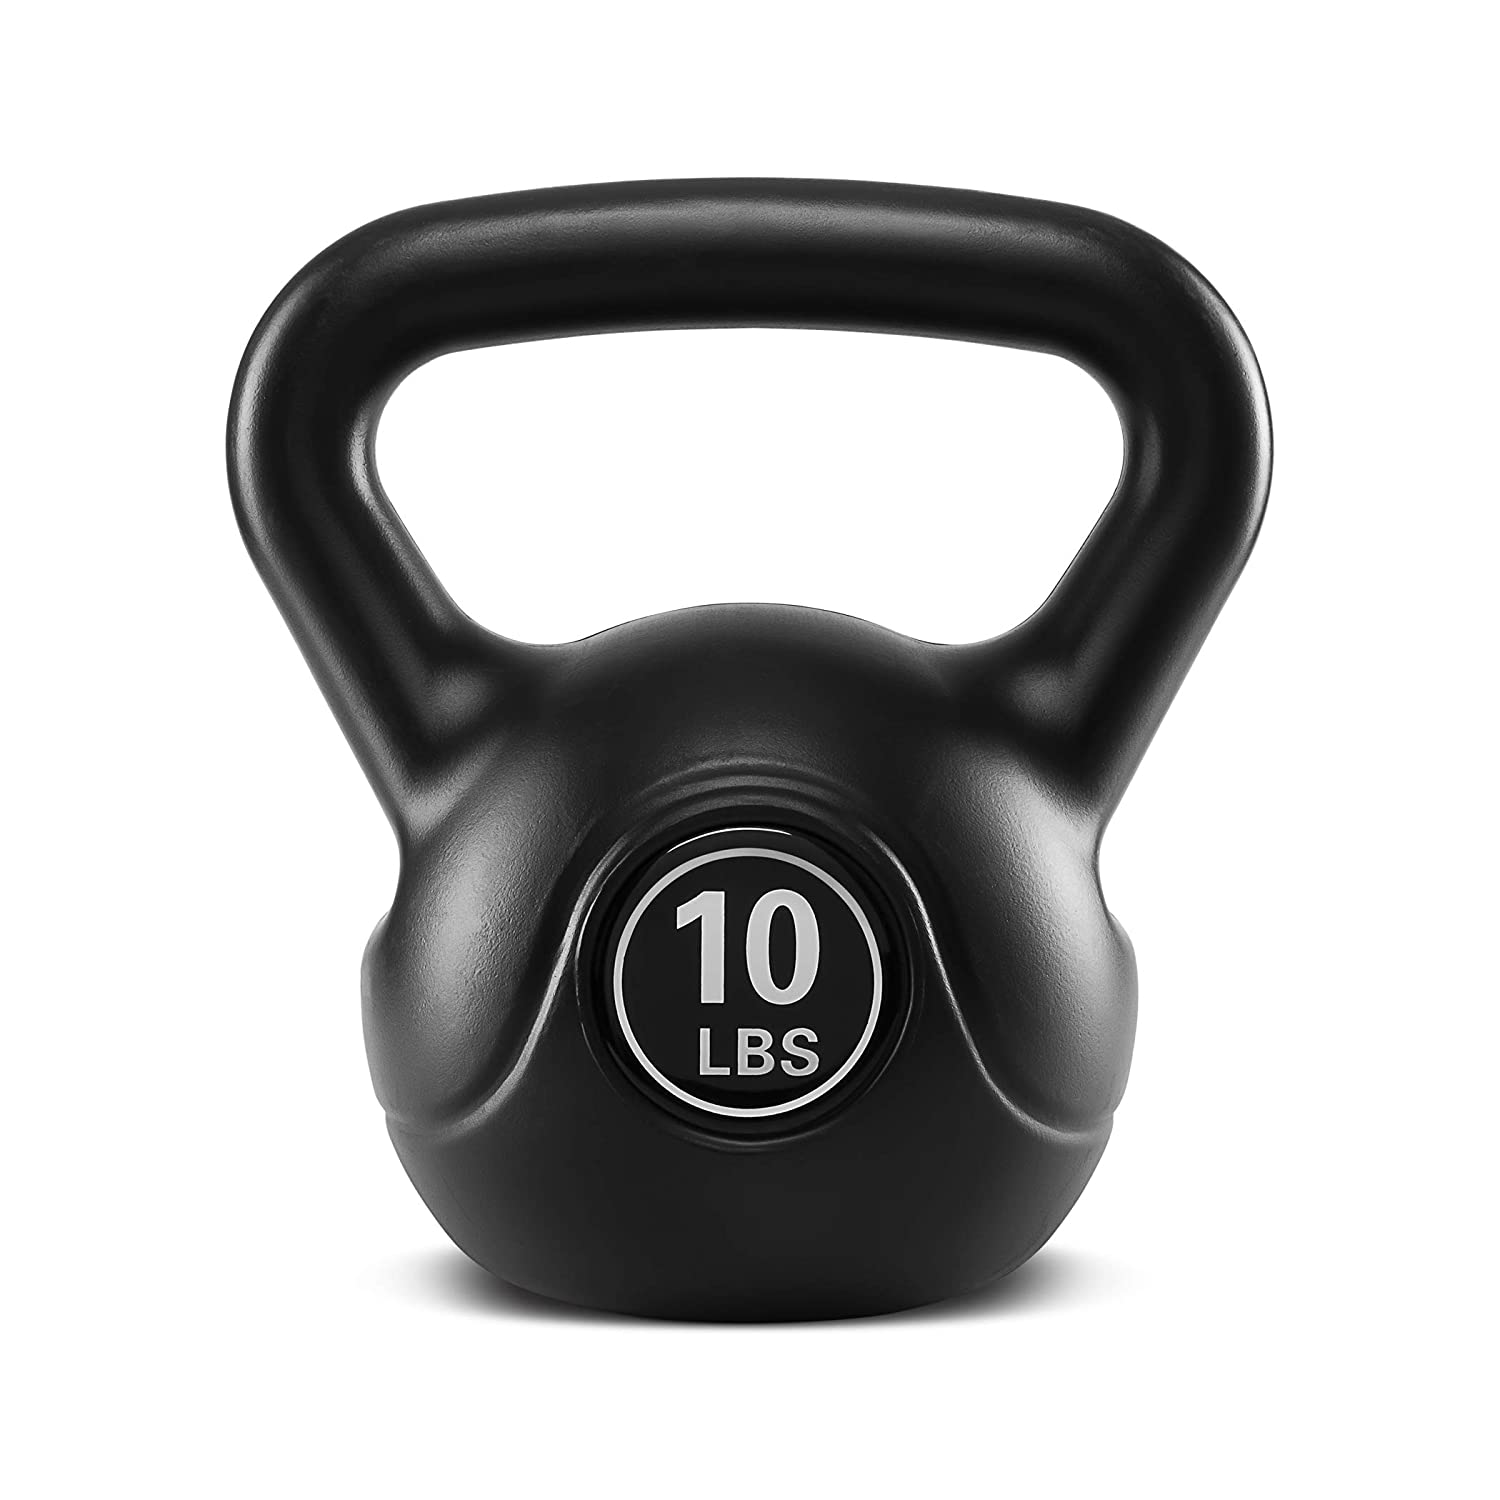 TKO Kettle Bell Gym- Durability- Fitness- Cross Training- Weightlifting- Bodybuilding- All Purpose Equipment- Plastic Coating